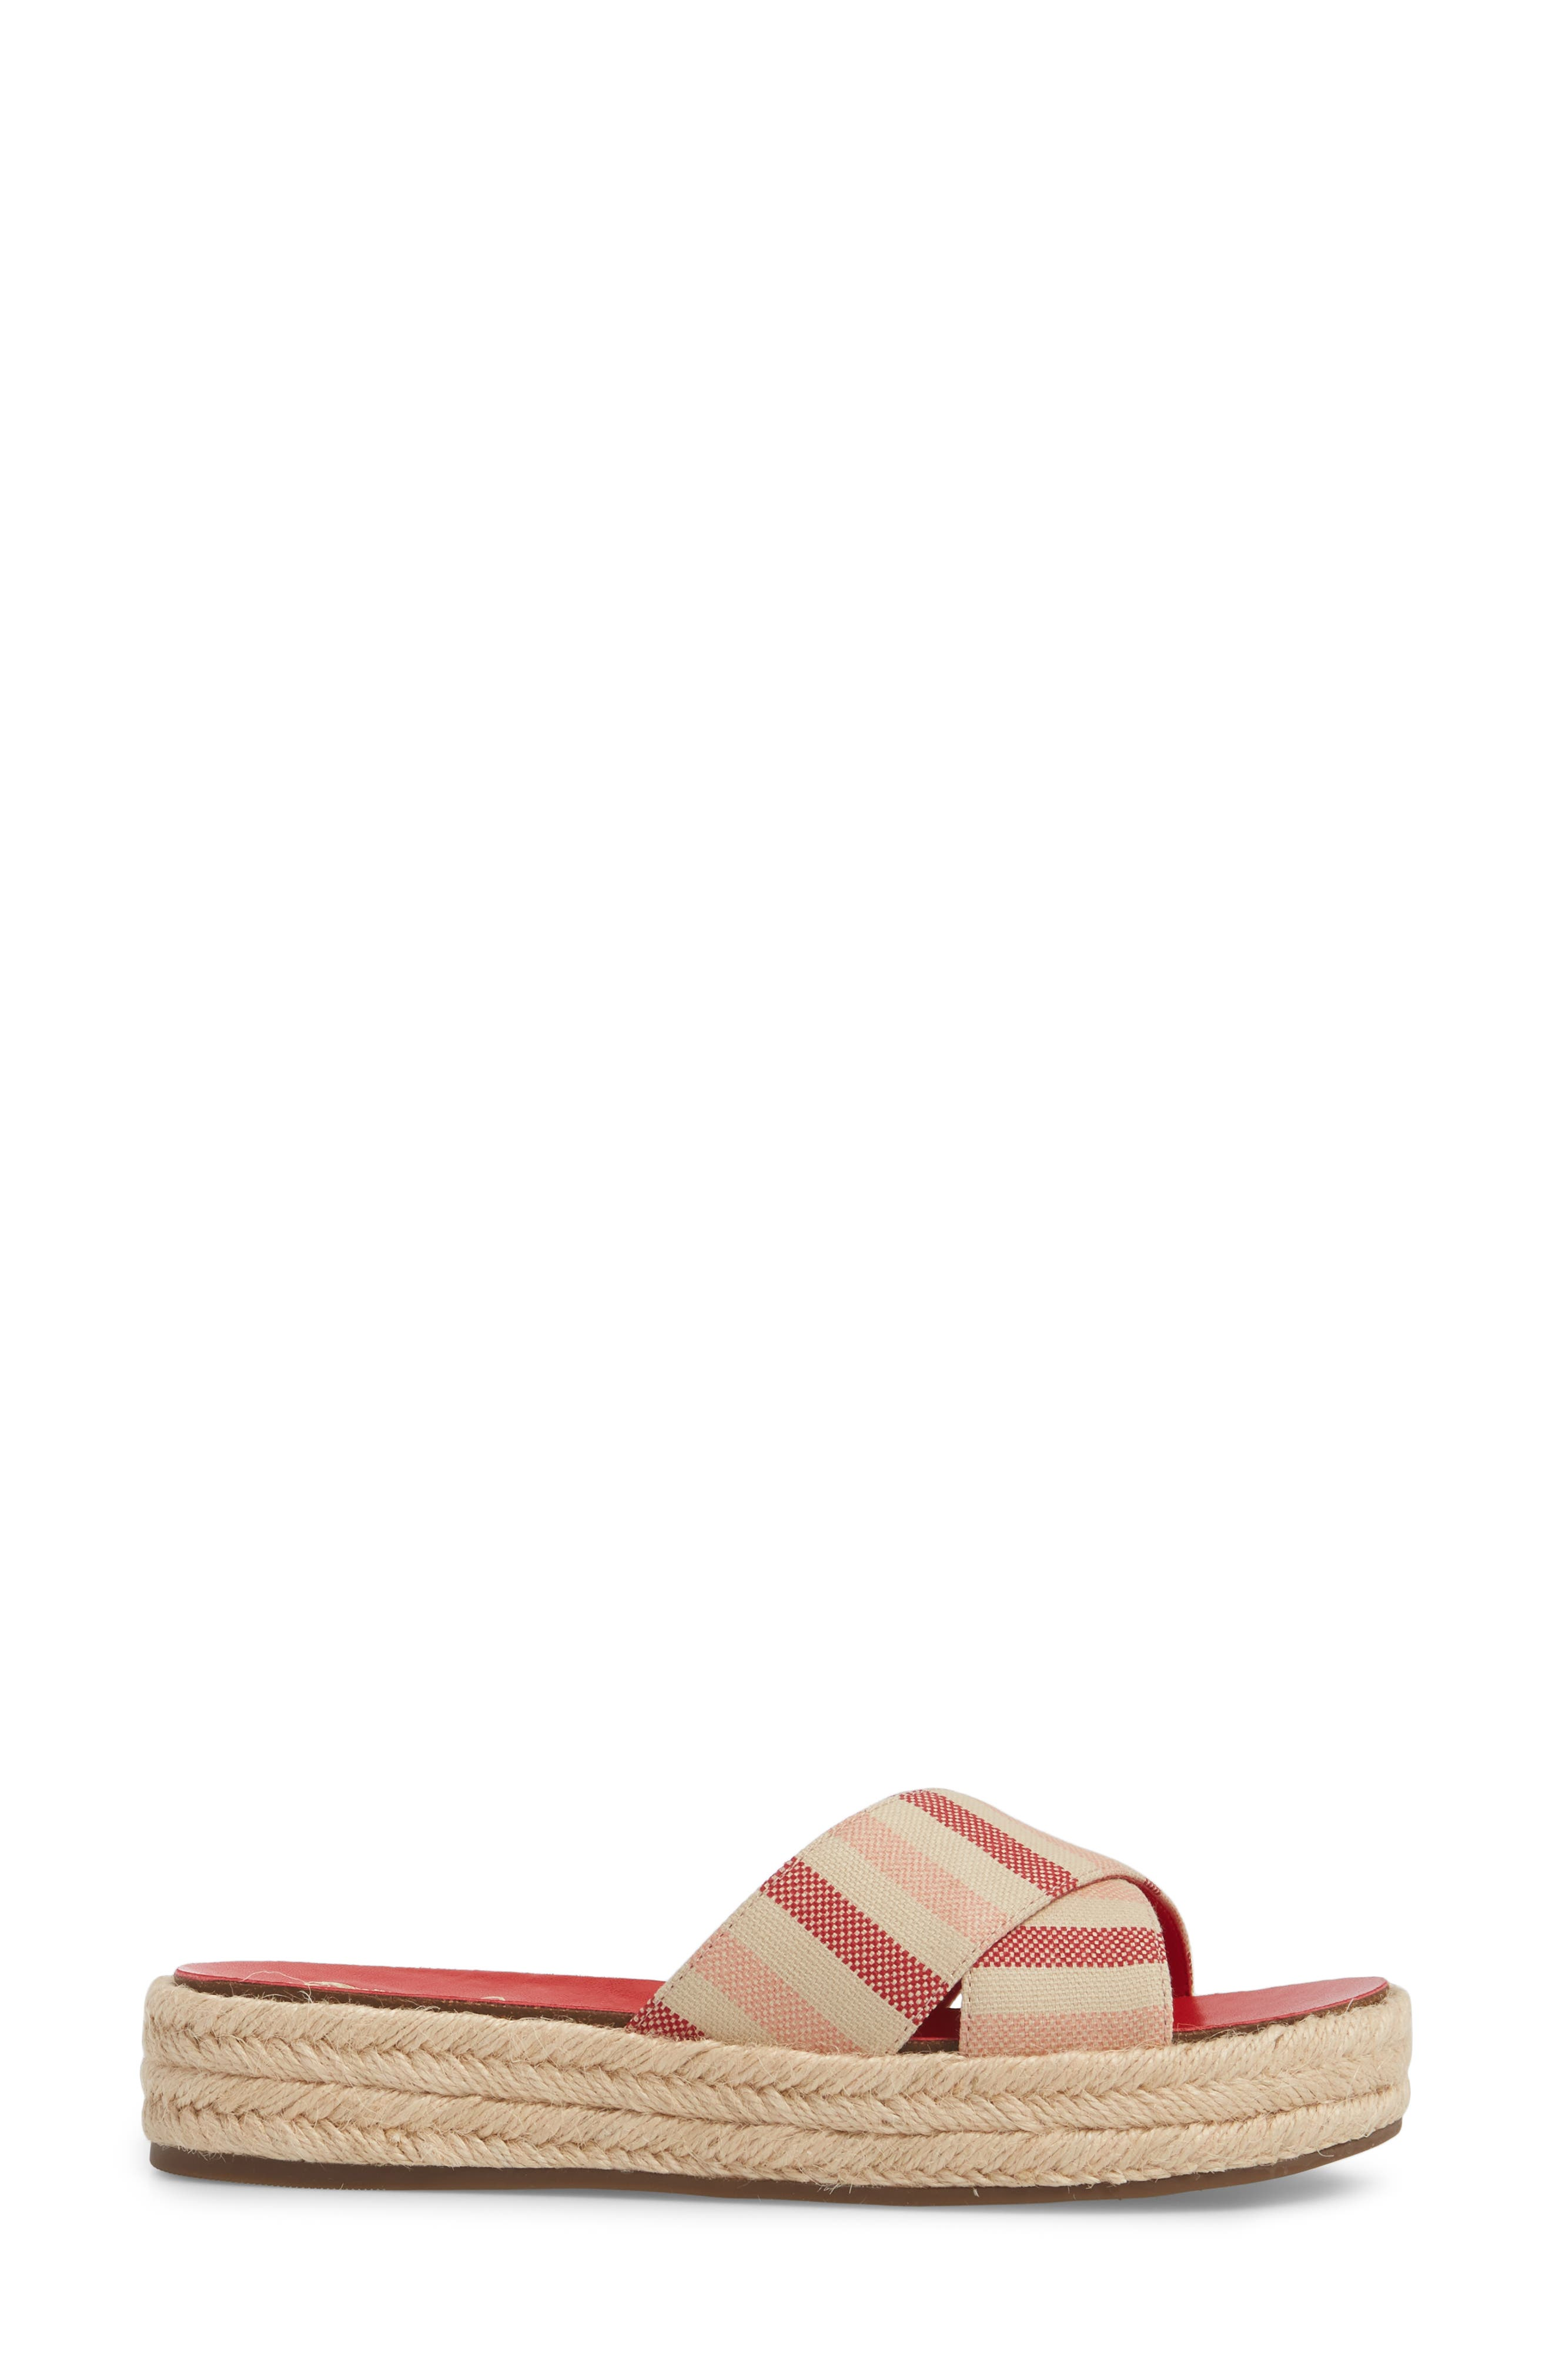 Carran Platform Sandal,                             Alternate thumbnail 3, color,                             Red Hot Rio Stripe Canvas